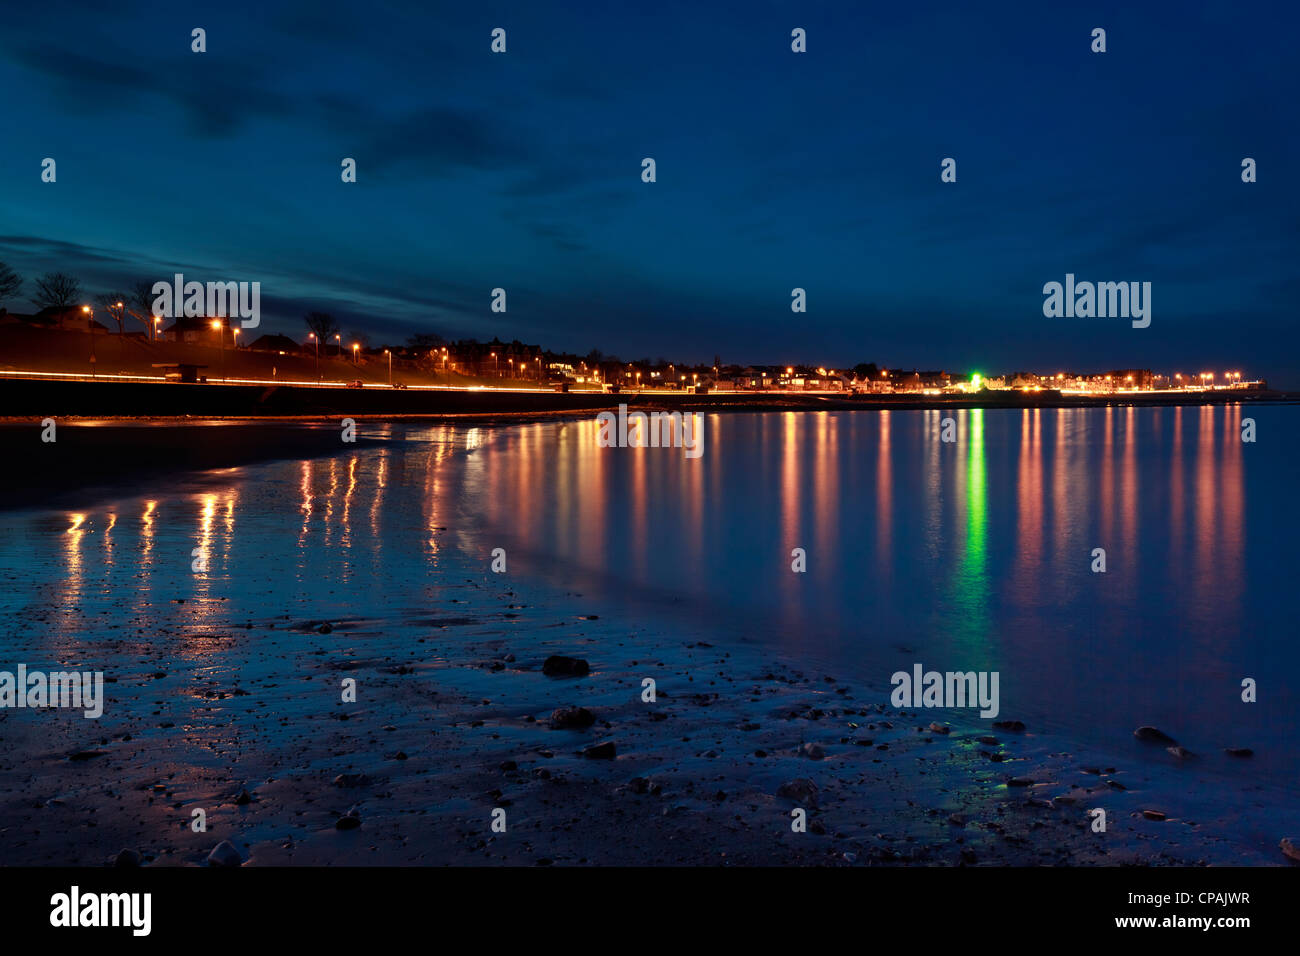 Rhos on sea at night with the street lights reflected in the evening waters. Stock Photo